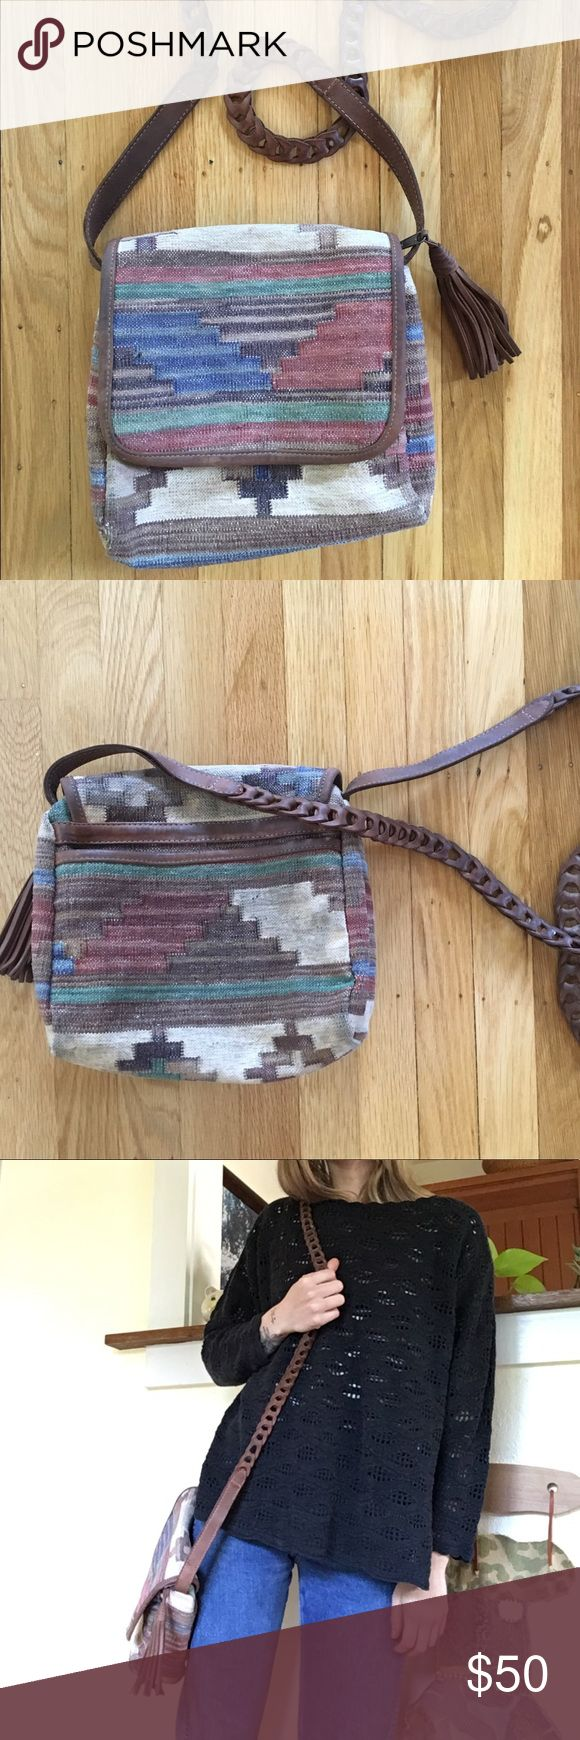 Vintage Southwestern Tapestry Bag Beautiful vintage bag with a nice southwestern design and pretty leather strap and fringe tassel. Bags Satchels